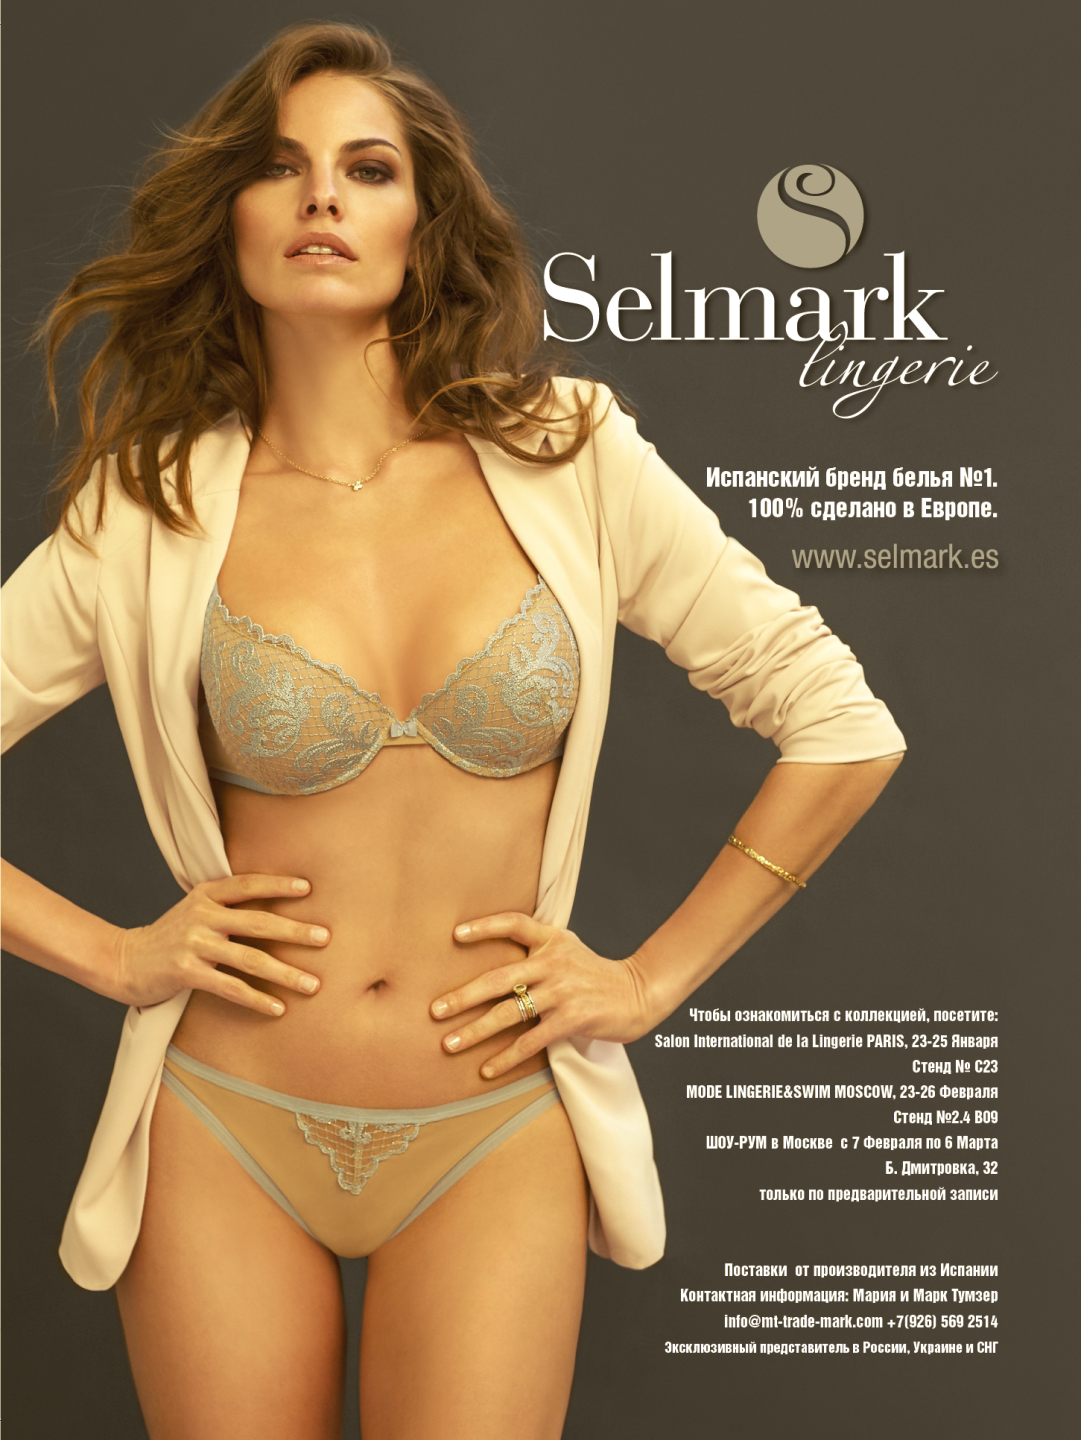 images pics selmark in russia and cis - SELMARK Lingerie in RUSSIA and CIS